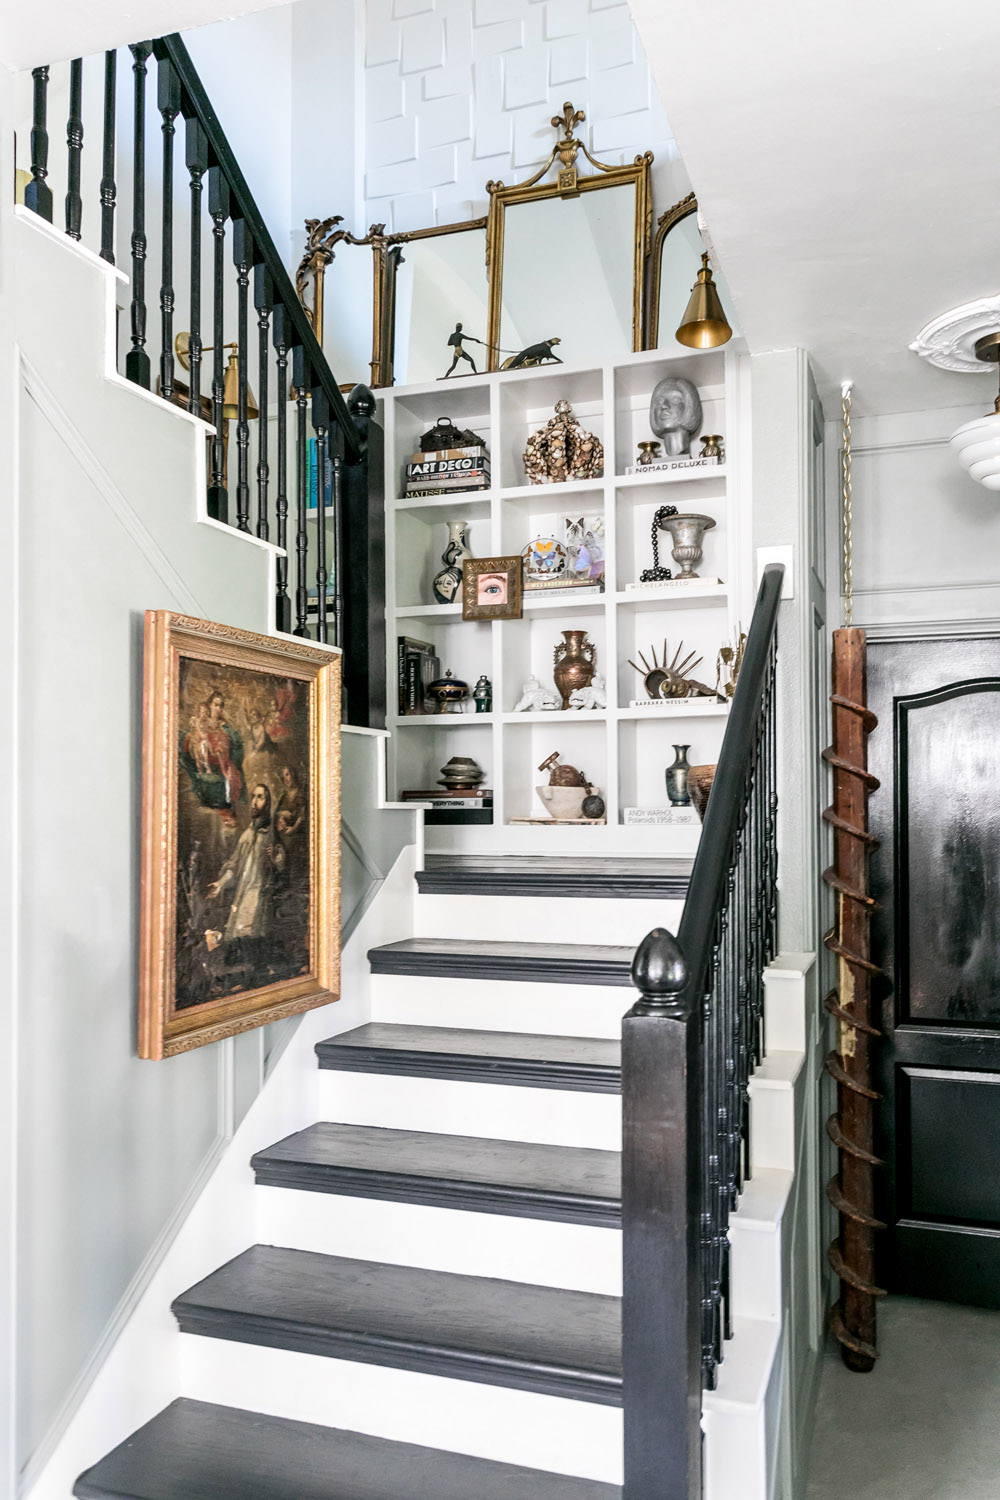 The Nordroom - A Collector's Eclectic Home in Texas